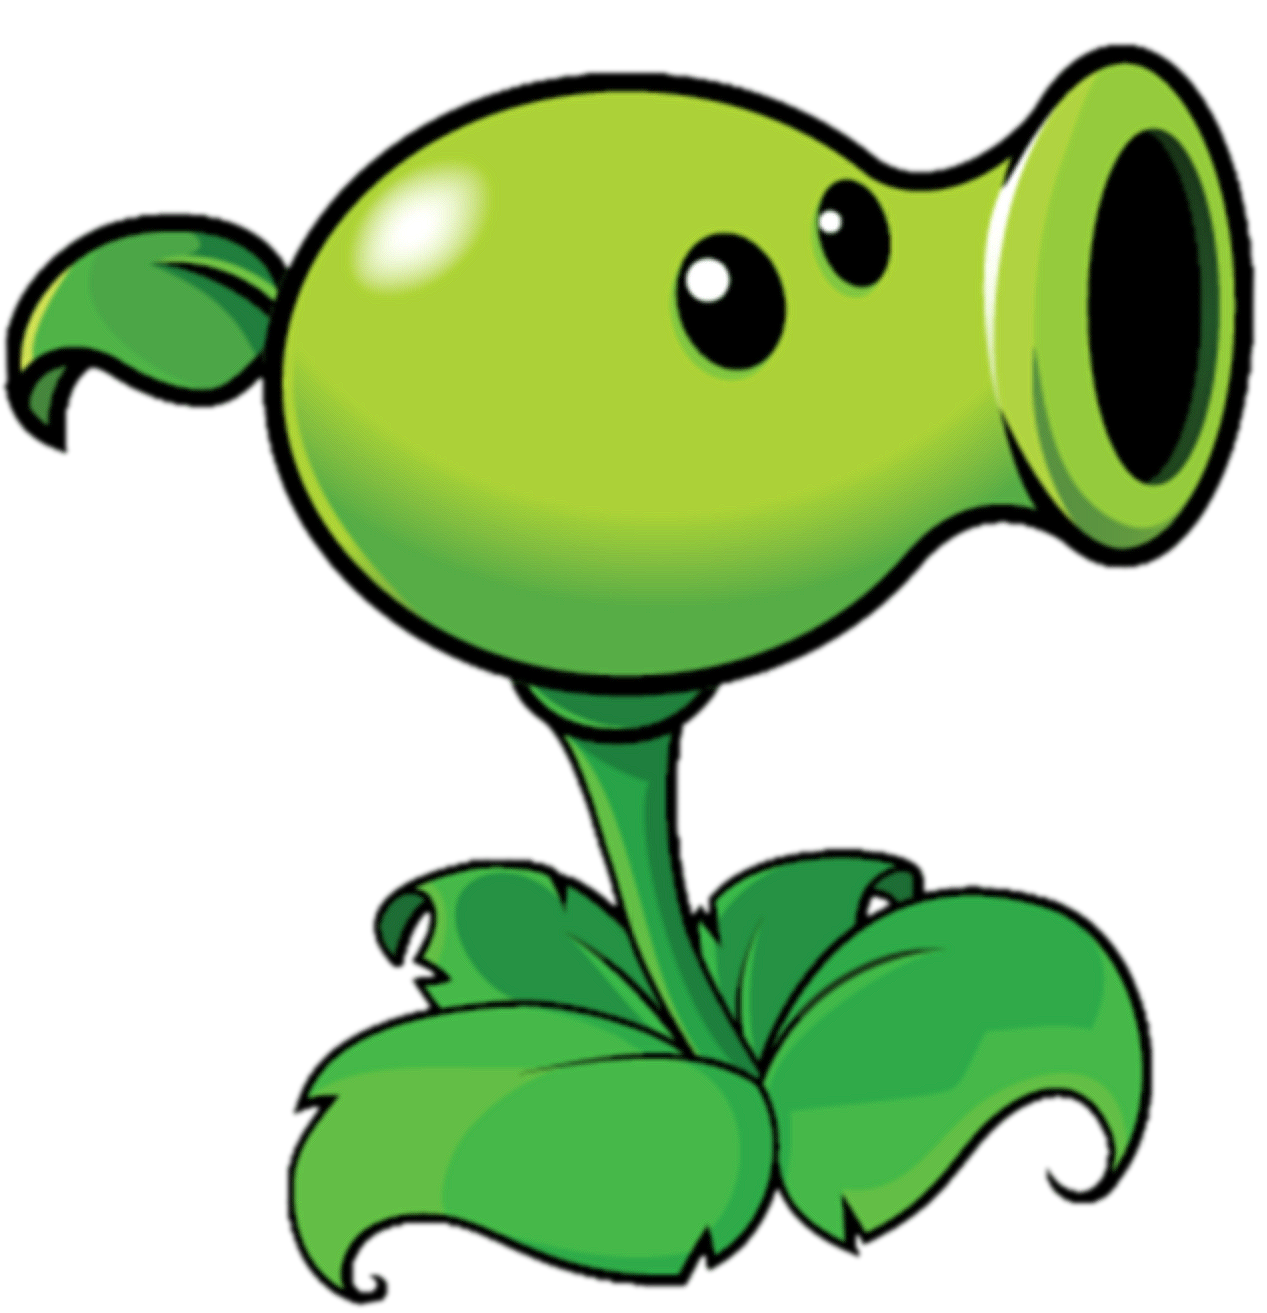 Peashooter plants vs zombies vs battles wiki fandom powered by peashooter plants vs zombies voltagebd Image collections